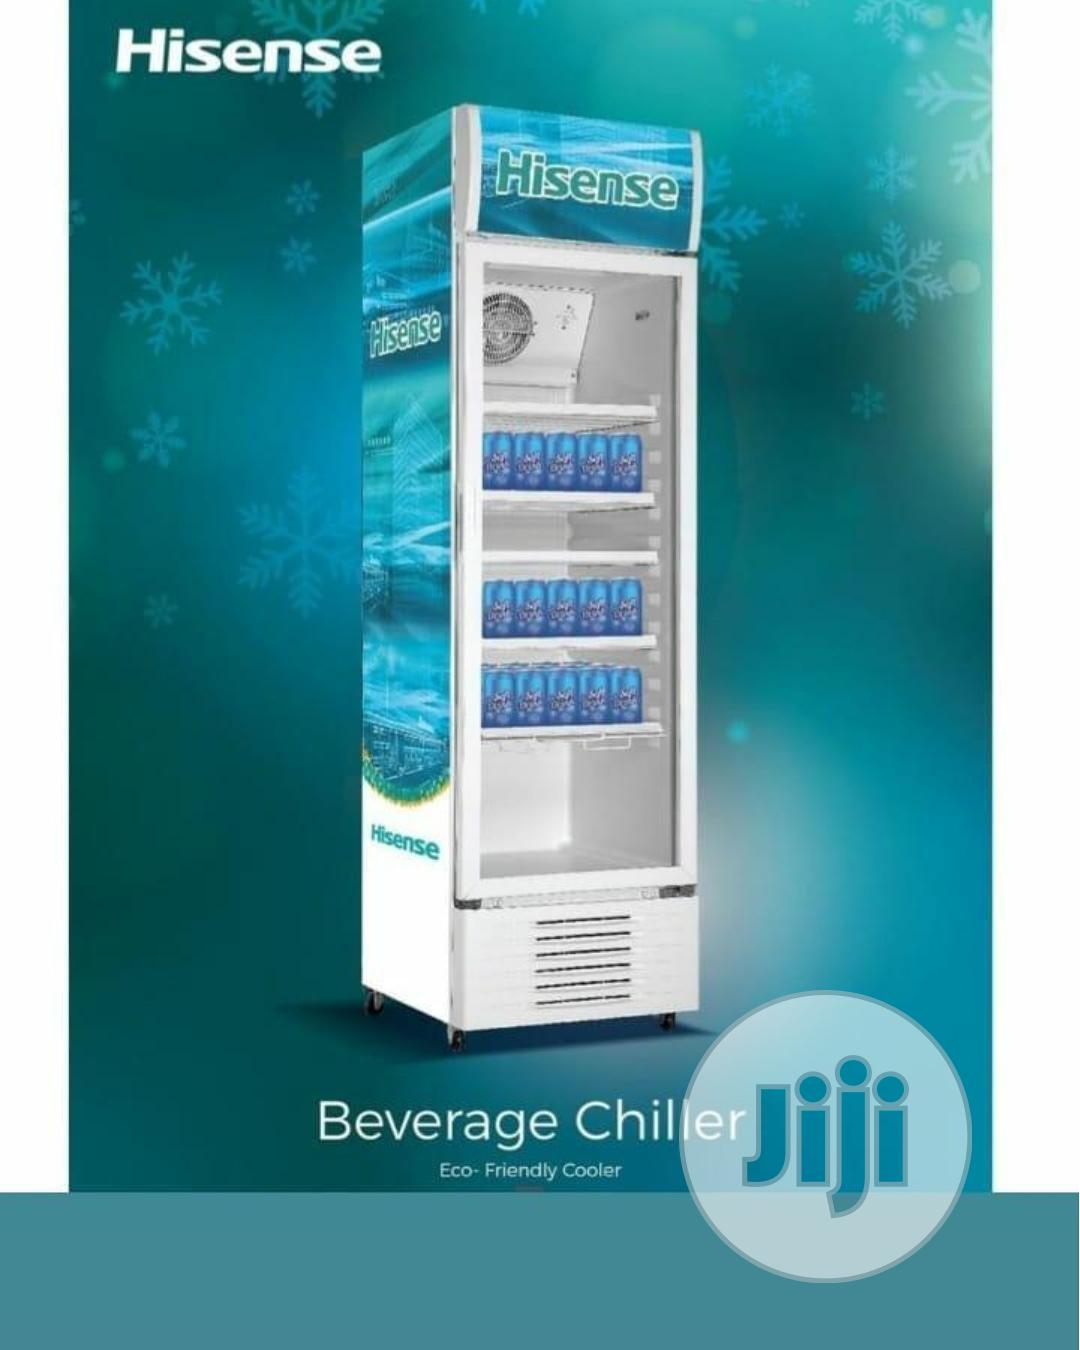 Beverage Chiller | Store Equipment for sale in Benin City, Edo State, Nigeria